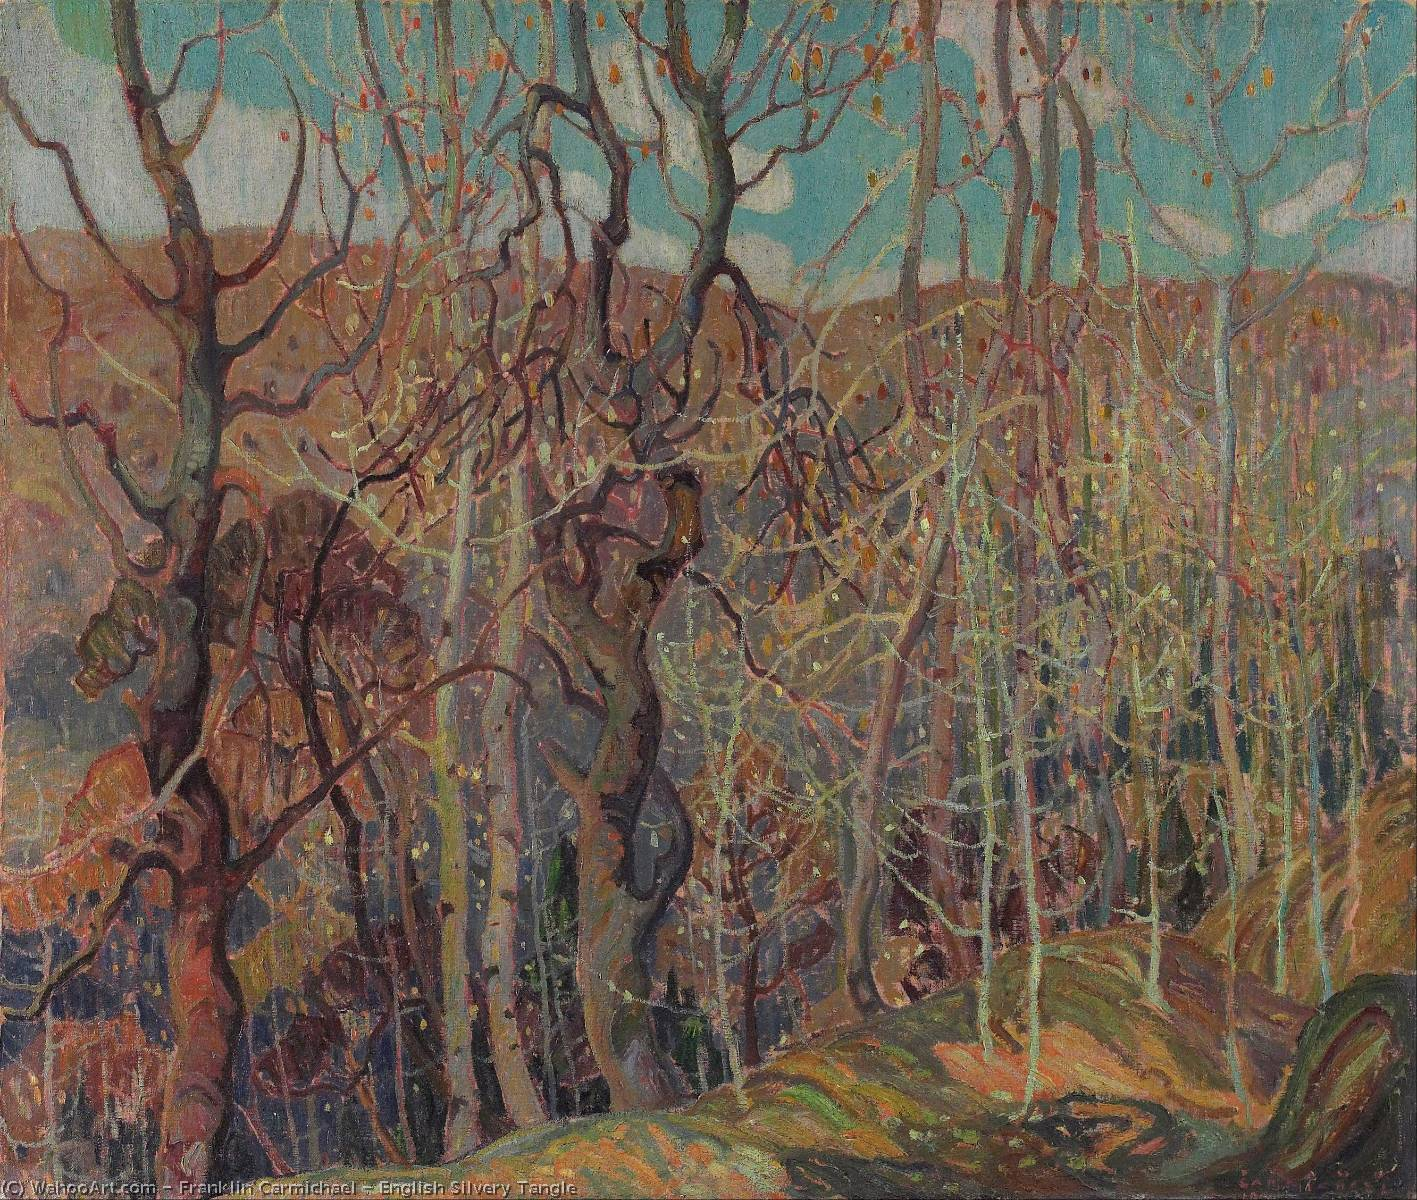 Wikioo.org - The Encyclopedia of Fine Arts - Painting, Artwork by Franklin Carmichael - English Silvery Tangle